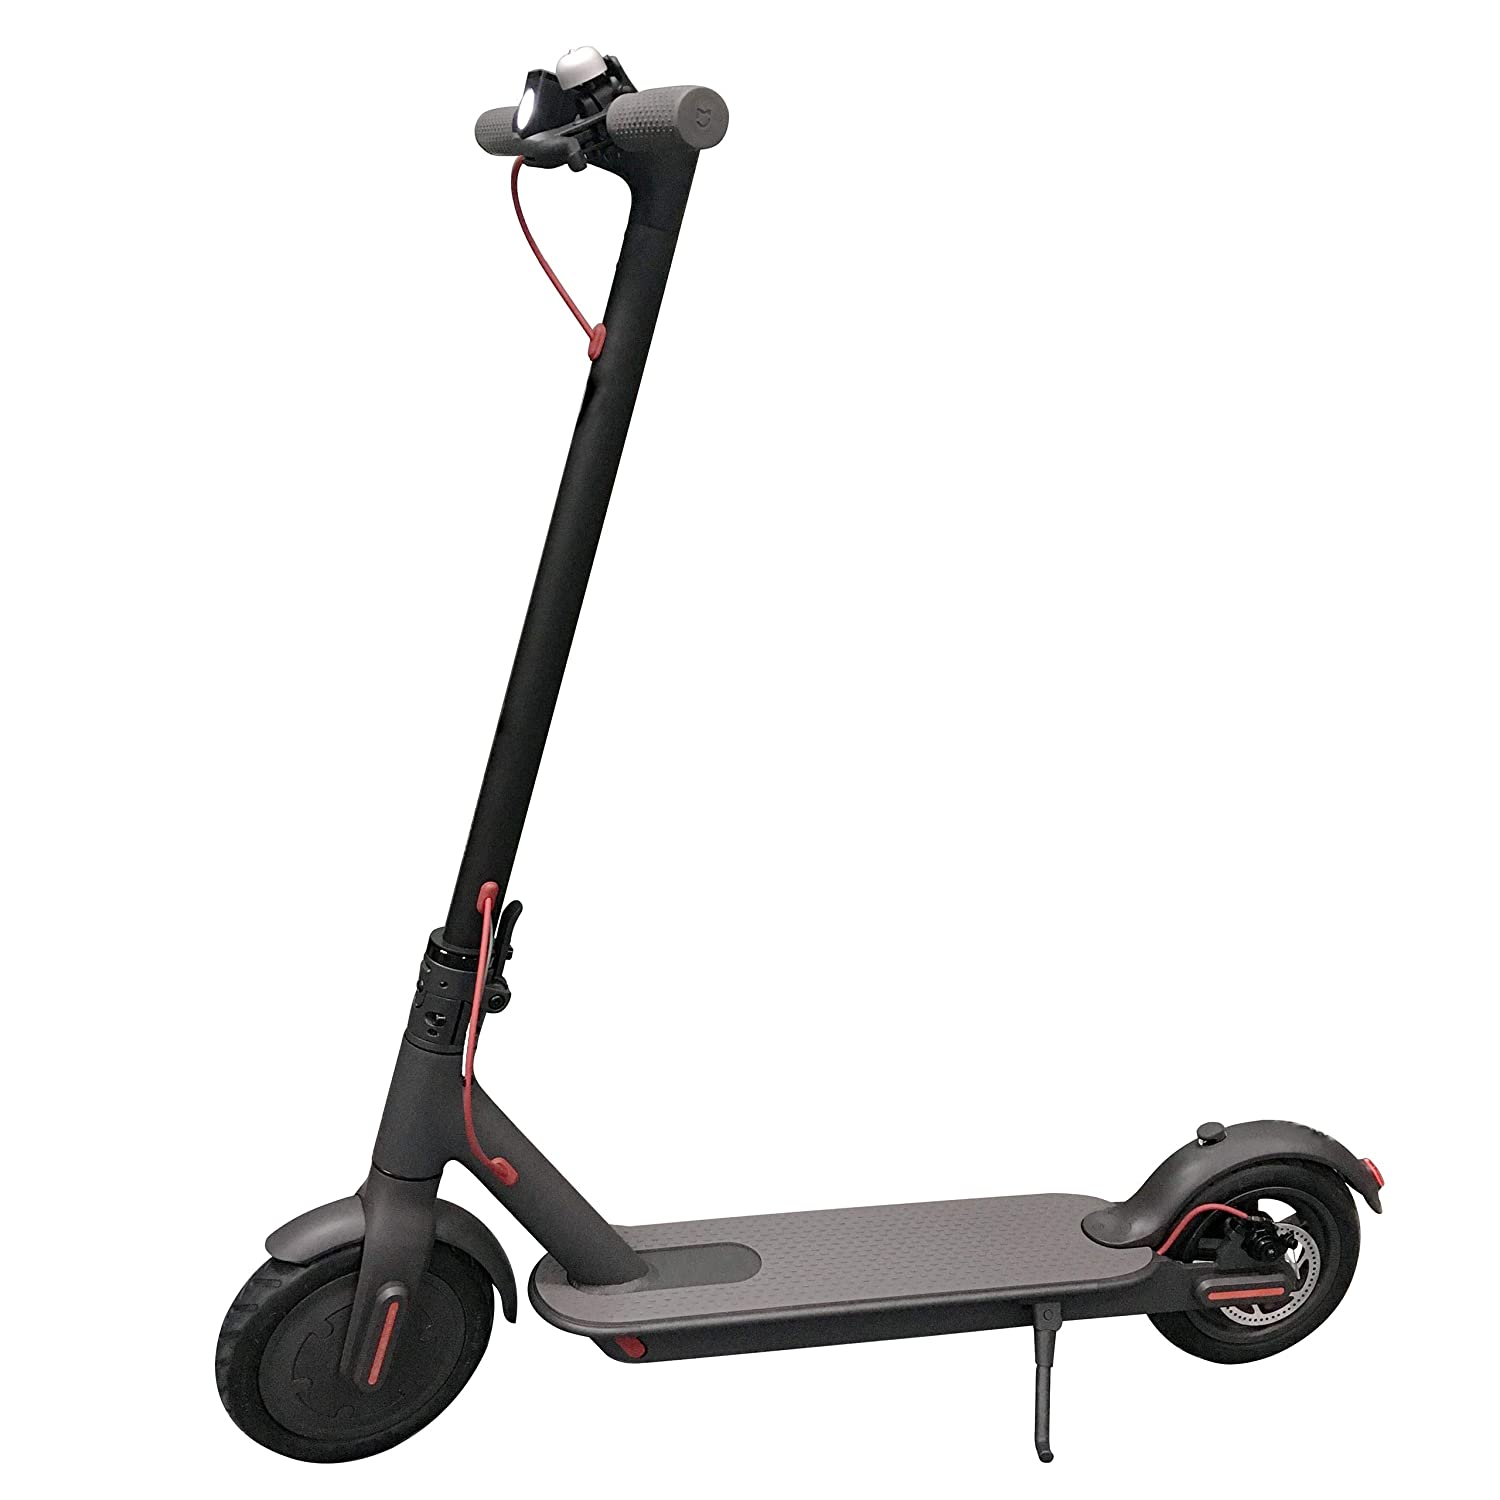 Amazon.com : Best Gadget Supply Portable Commuting Electric Scooter- 15.5 Mile Max Long-Range Battery, 15 Mph max Speed, 8.5